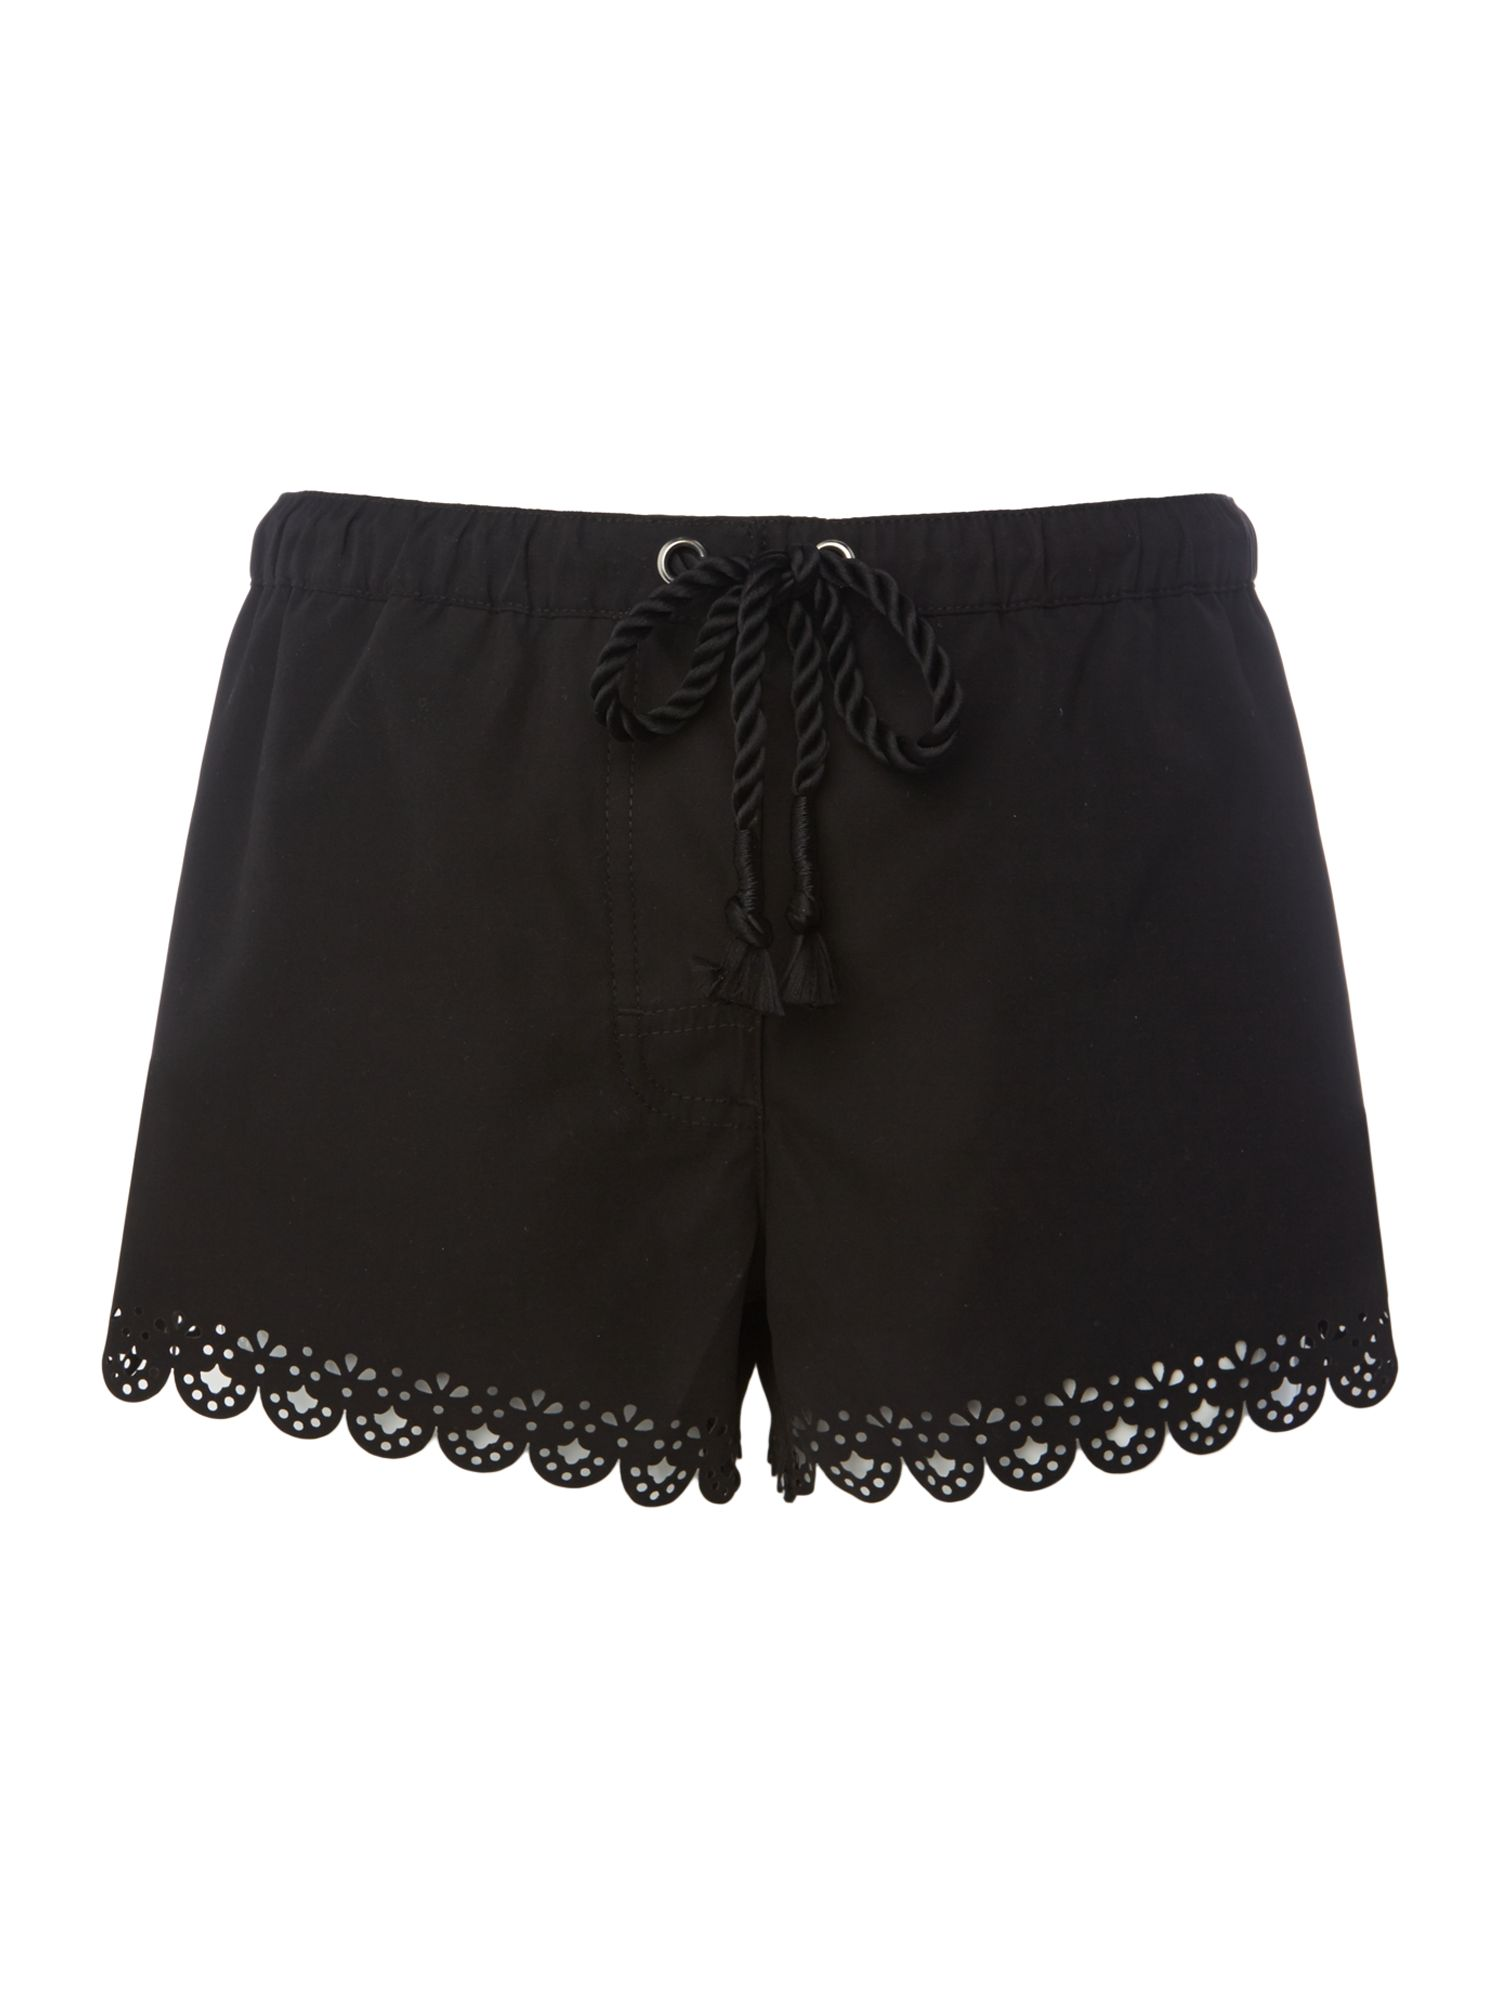 Seafolly Bella lazer cut board shorts, Black